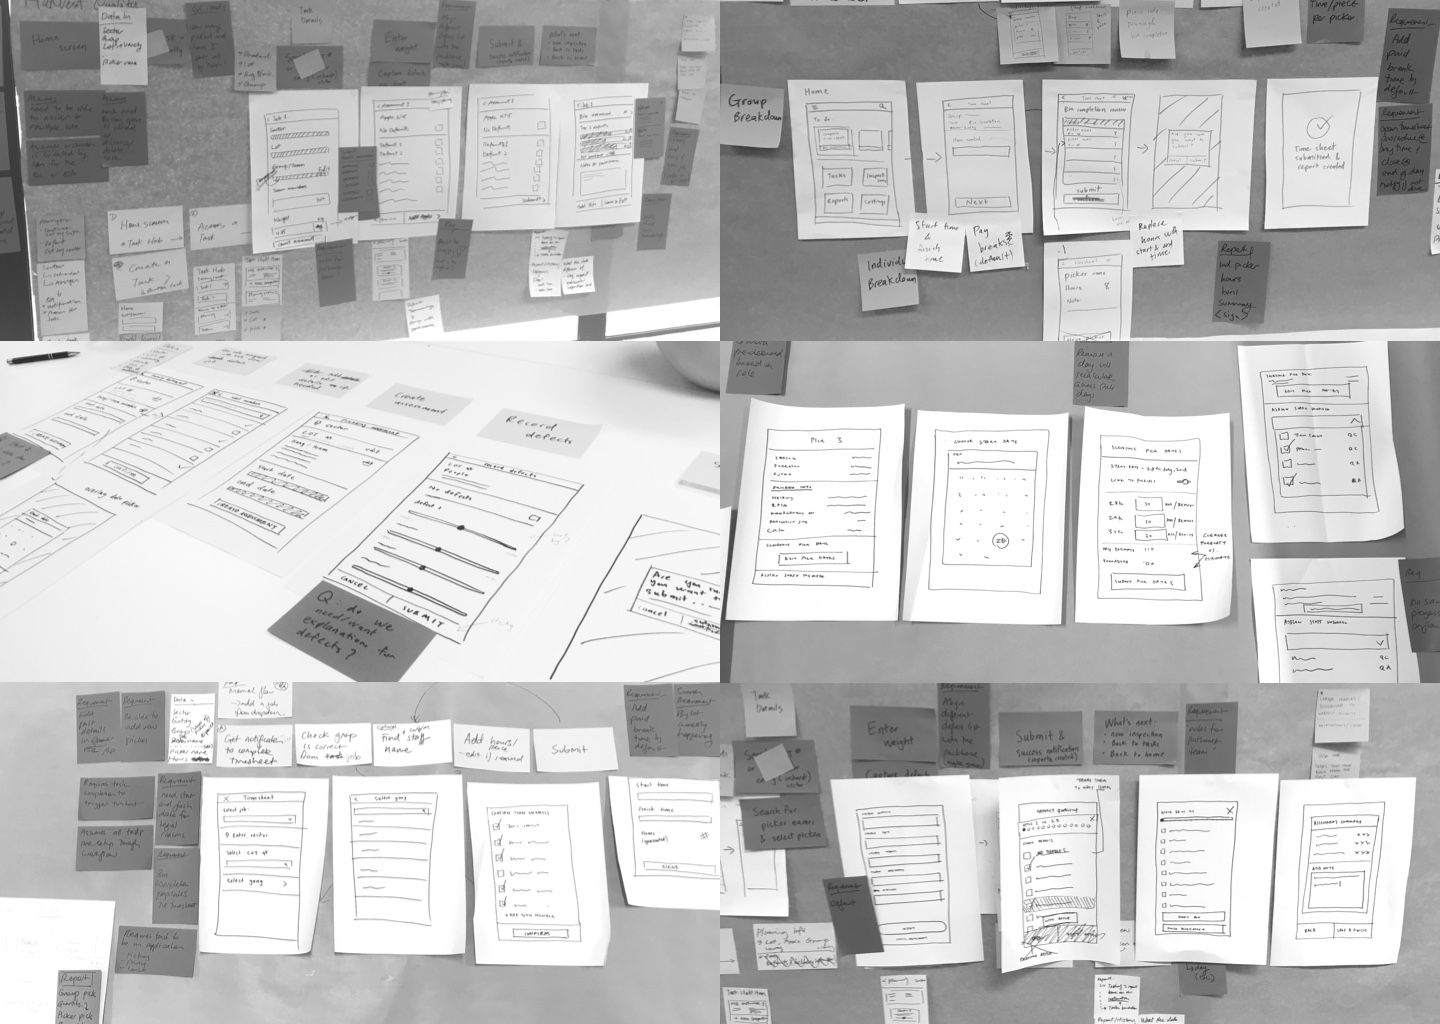 Photo collage of hand-drawn wireframes